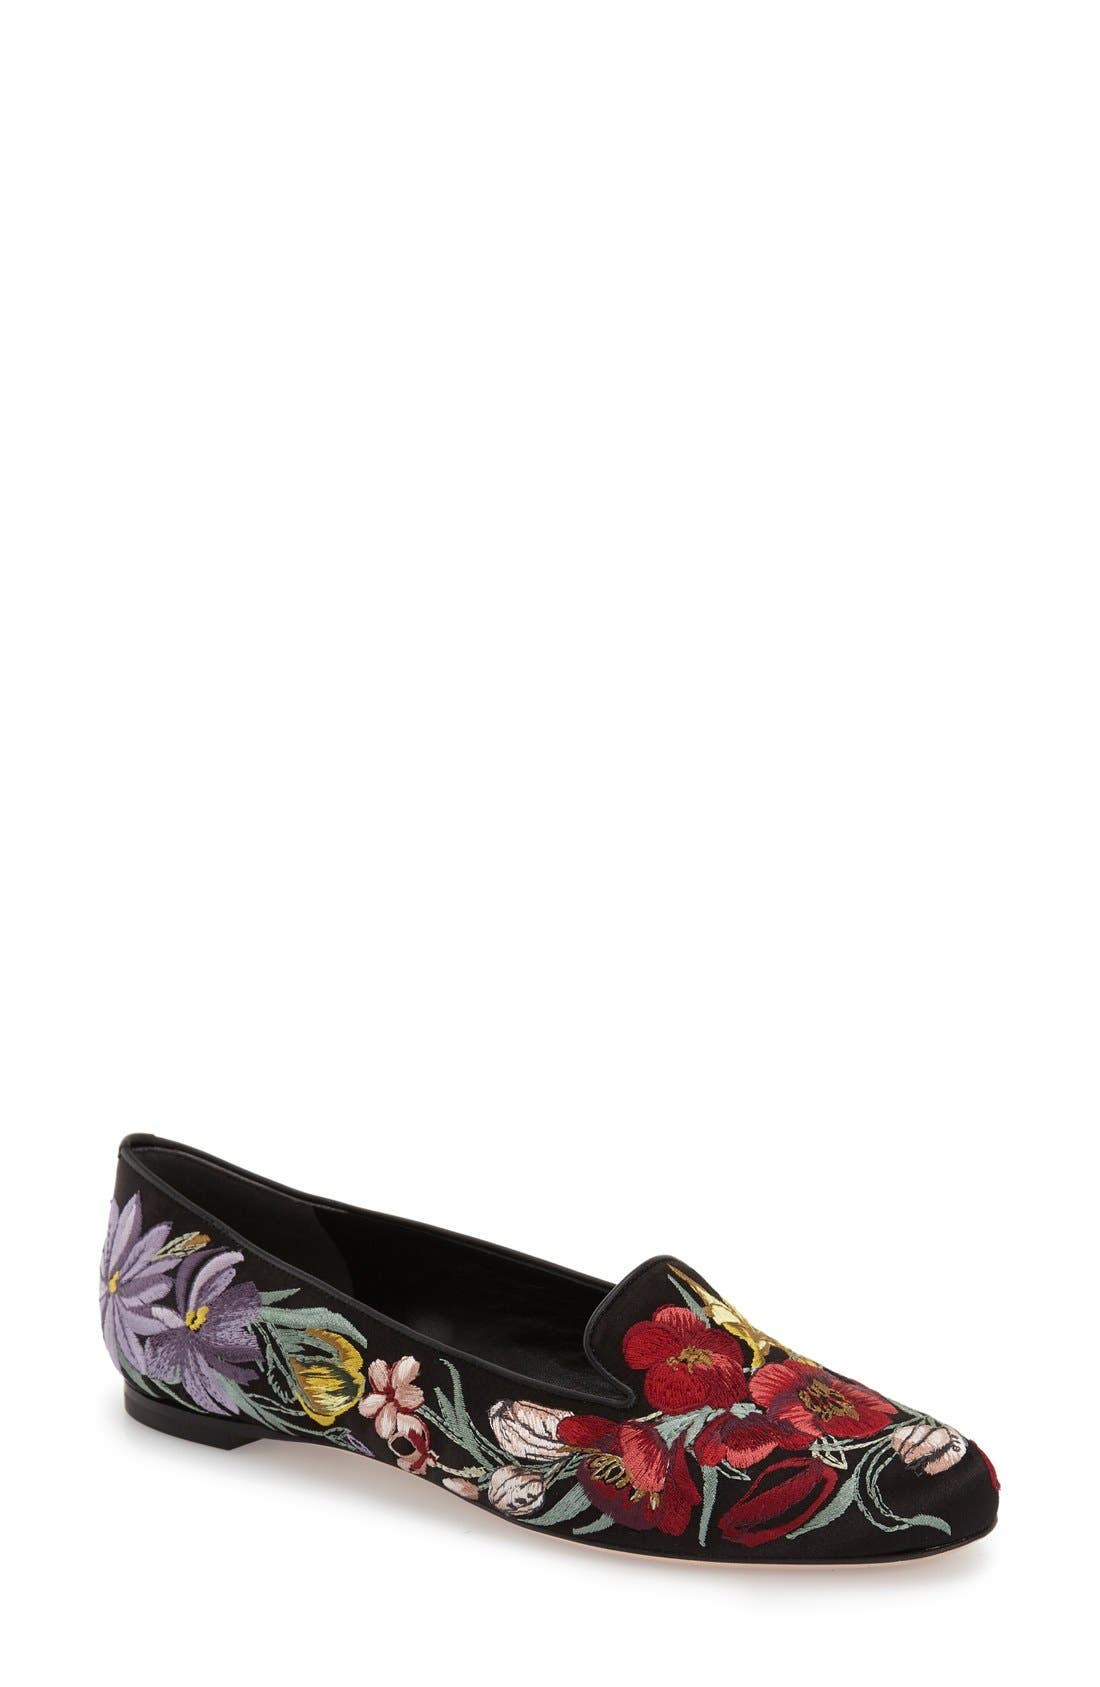 Alternate Image 1 Selected - Alexander McQueen Embroidered Flower Loafer (Women)